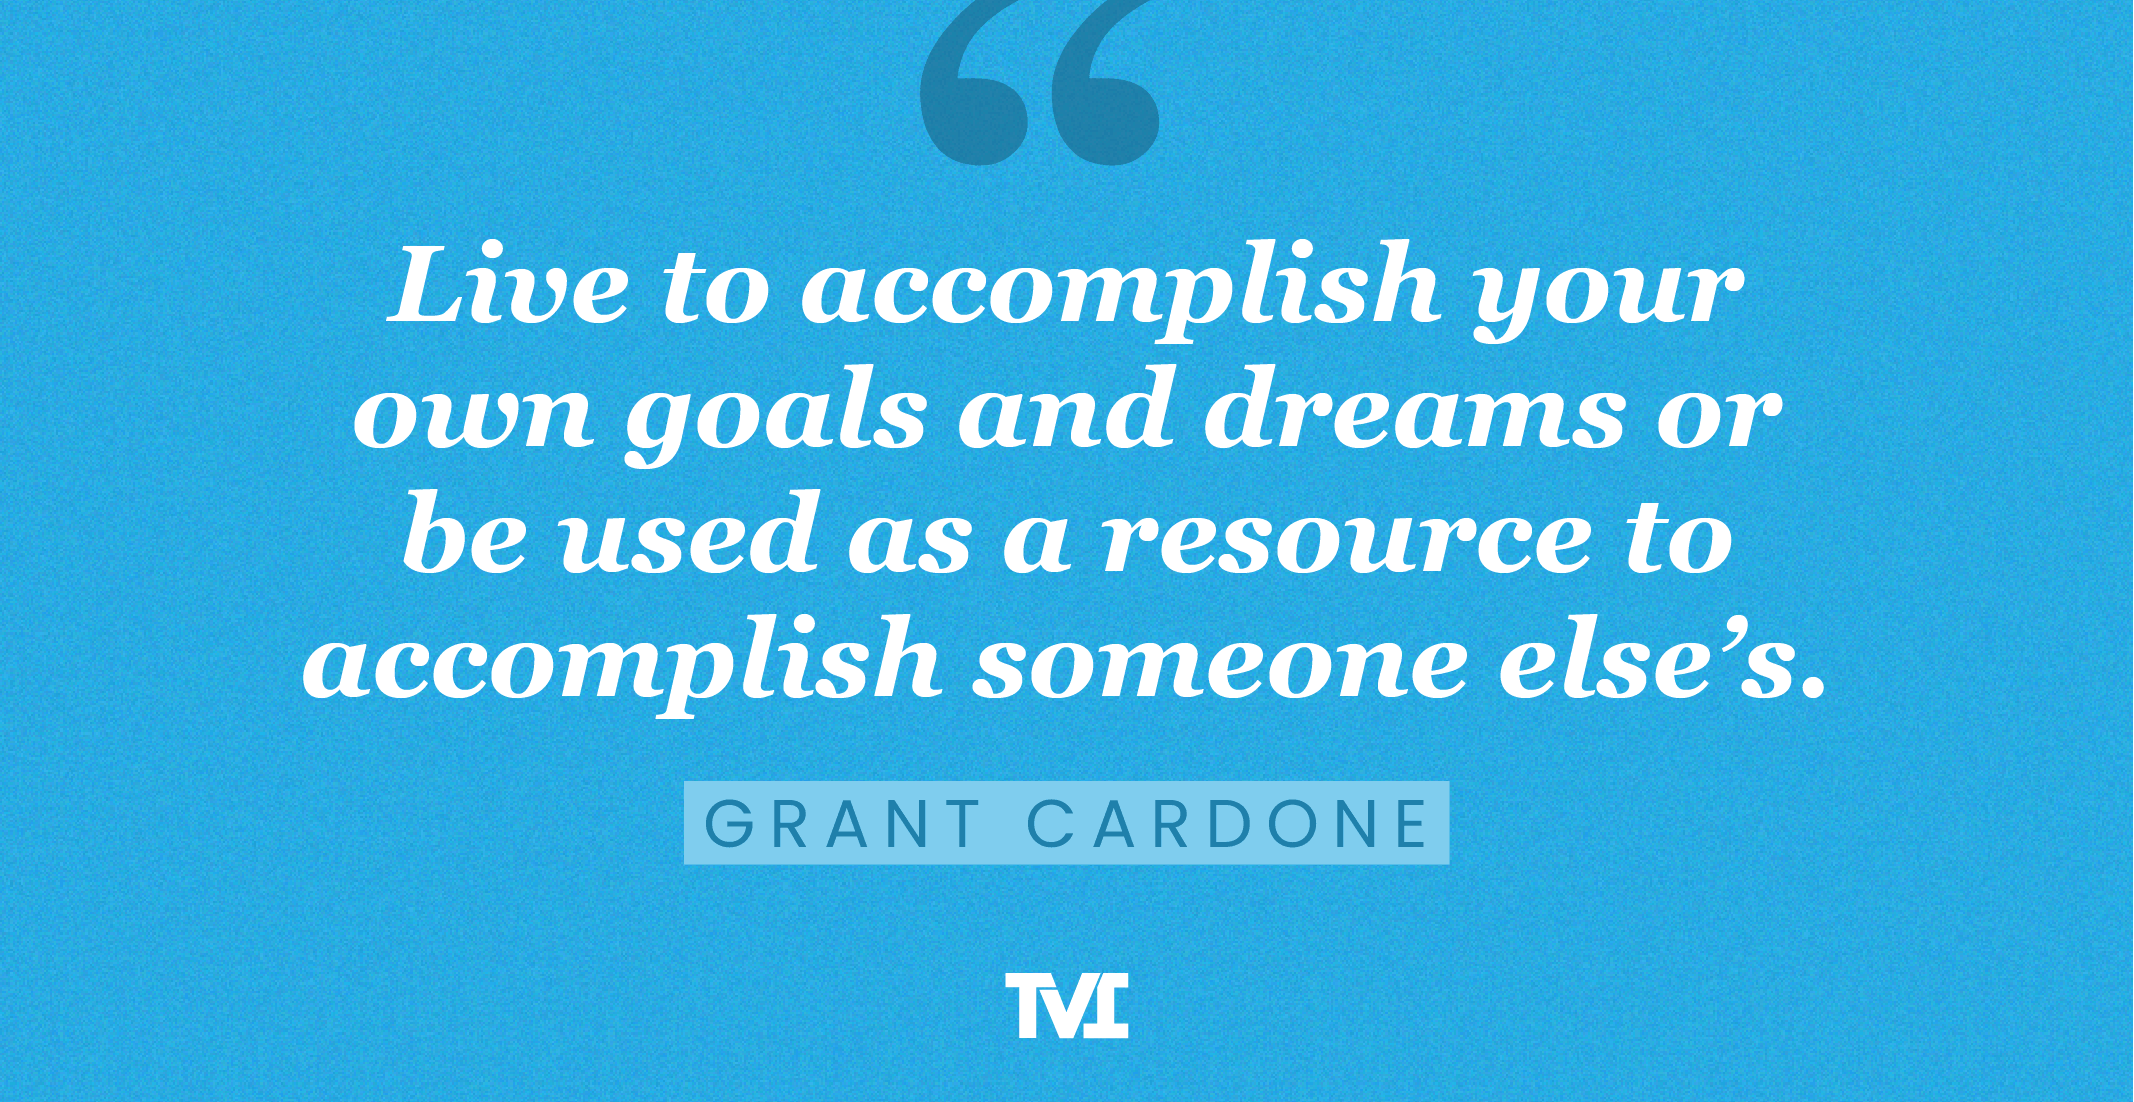 """""""Live to accomplish your own goals and dreams or be used as a resource to accomplish someone else's."""" —Grant Cardone"""